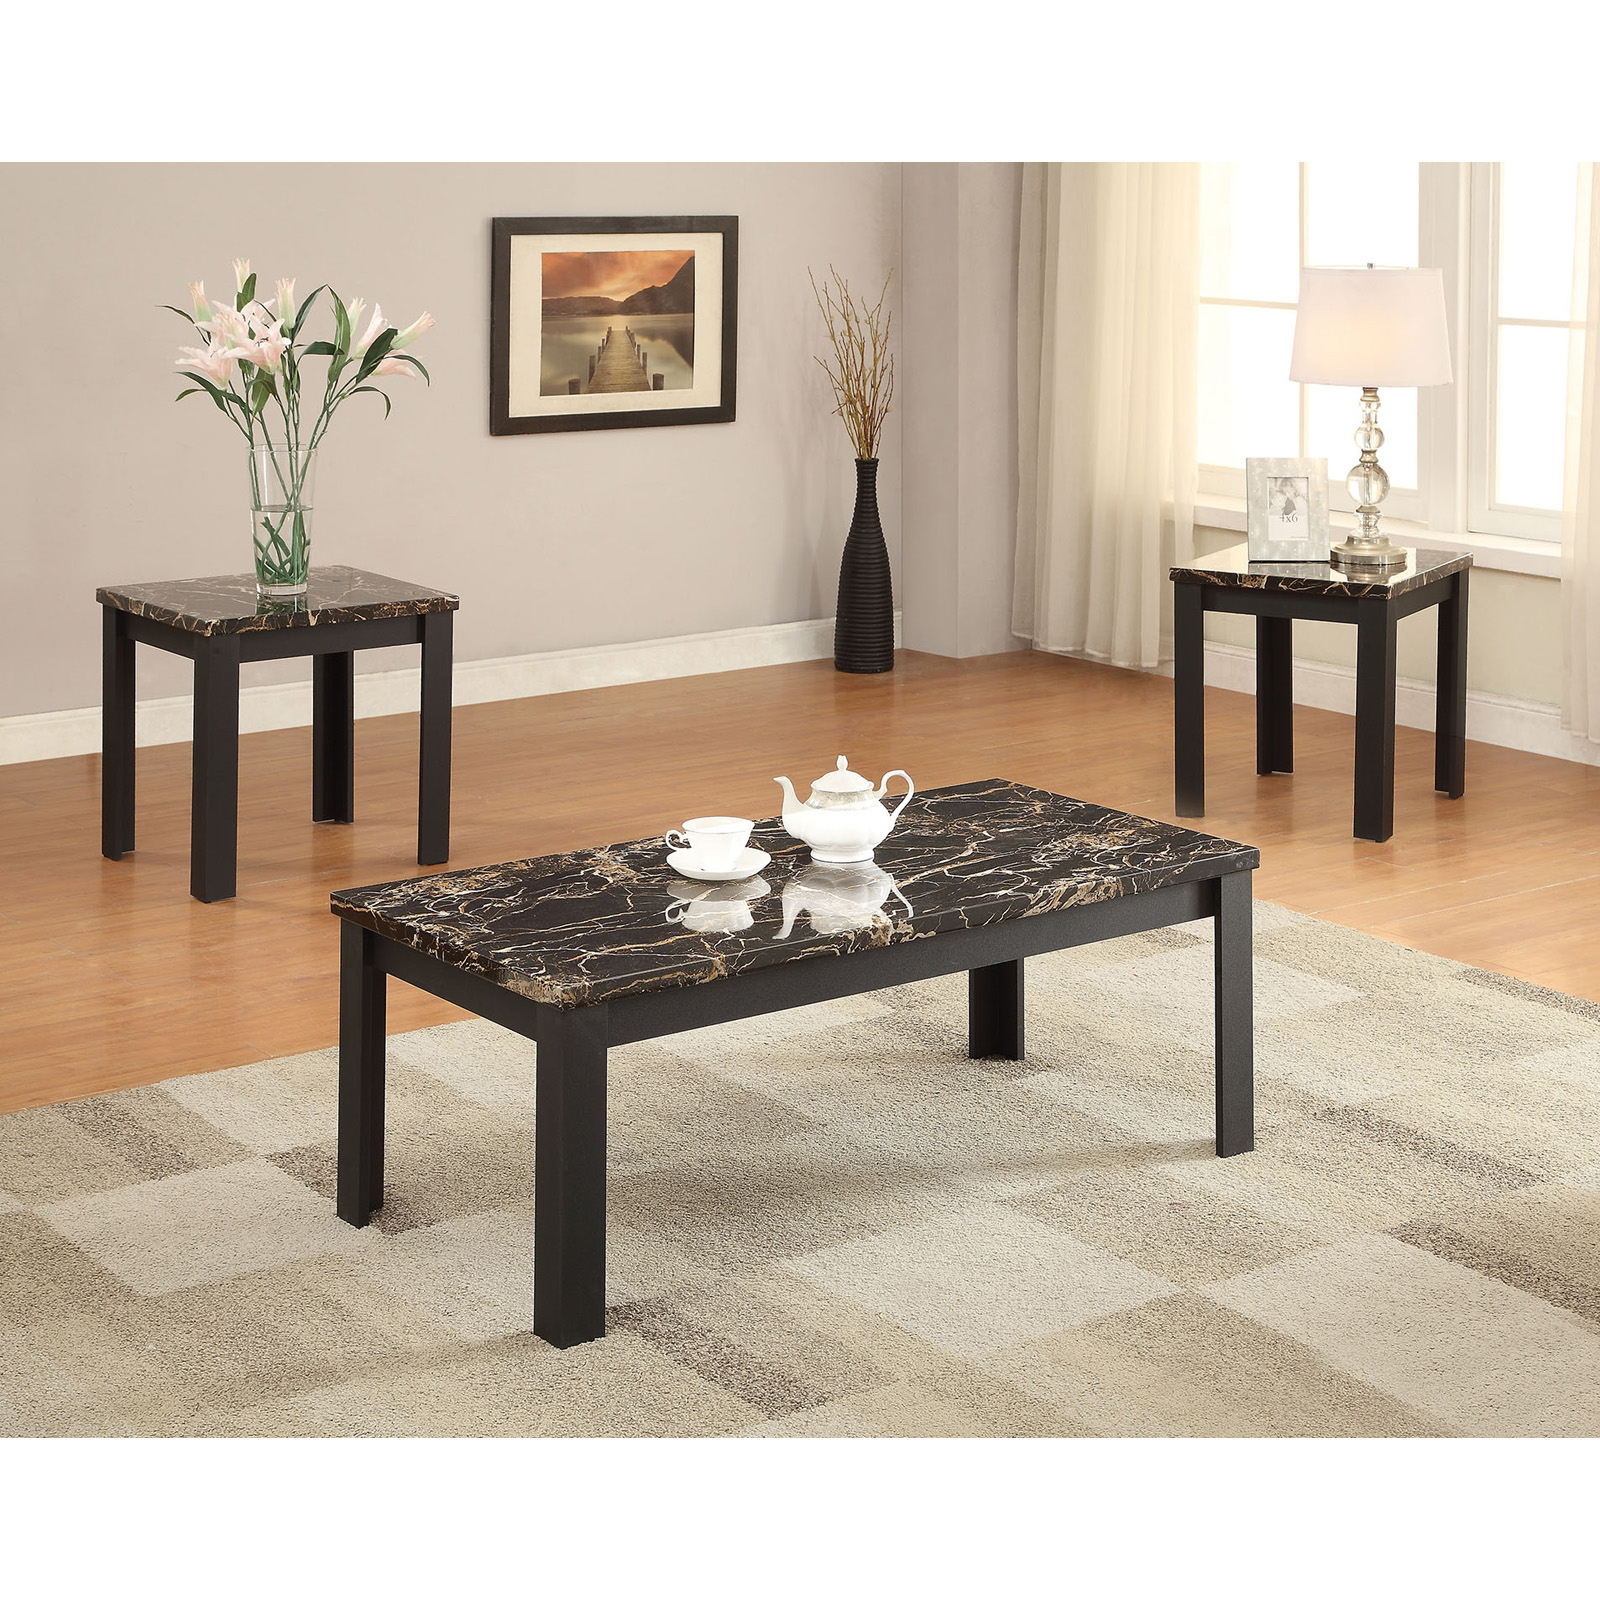 Acme Furniture Carly Faux Marble and Black 3 Piece Coffee and End Table Set  sc 1 st  Hayneedle & Marble Top Coffee Table Sets | Hayneedle